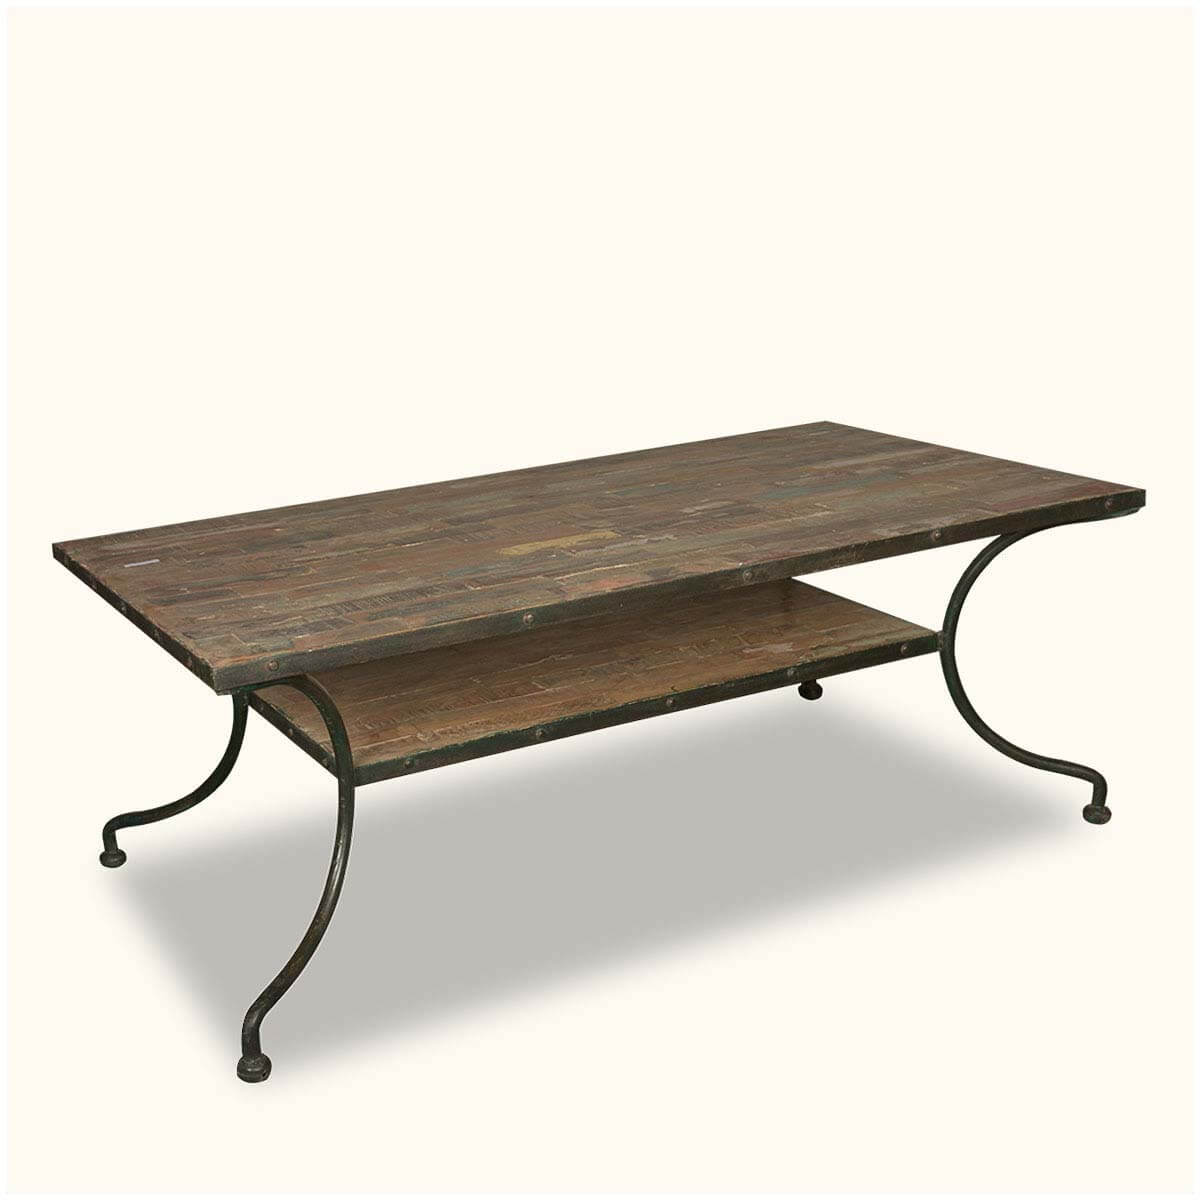 Reclaimed wood iron industrial 2 tier rustic coffee table for Reclaimed coffee table